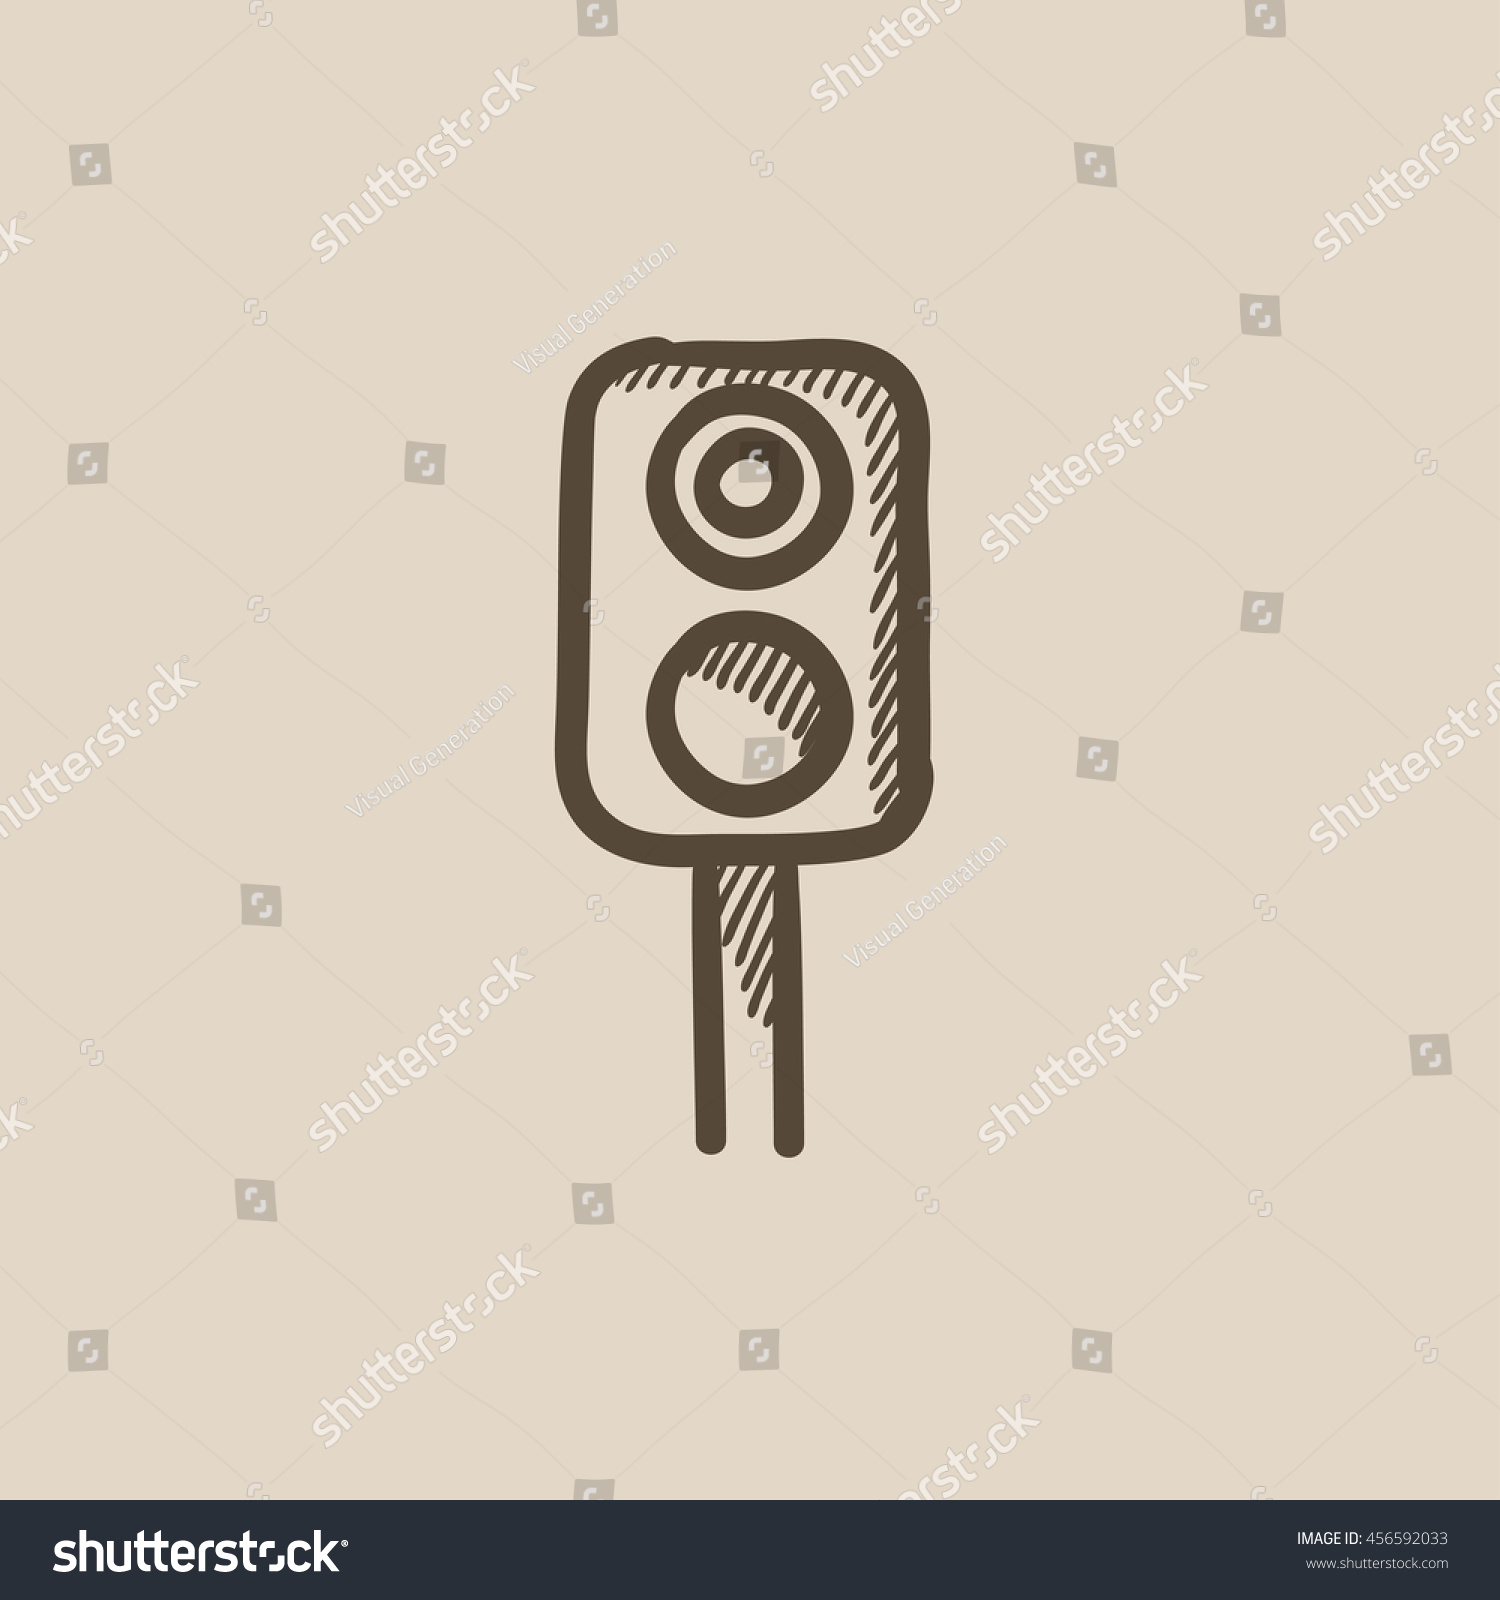 Railway Traffic Light Vector Sketch Icon Stock Vector 456592033 ... for Traffic Light Sketch  56mzq